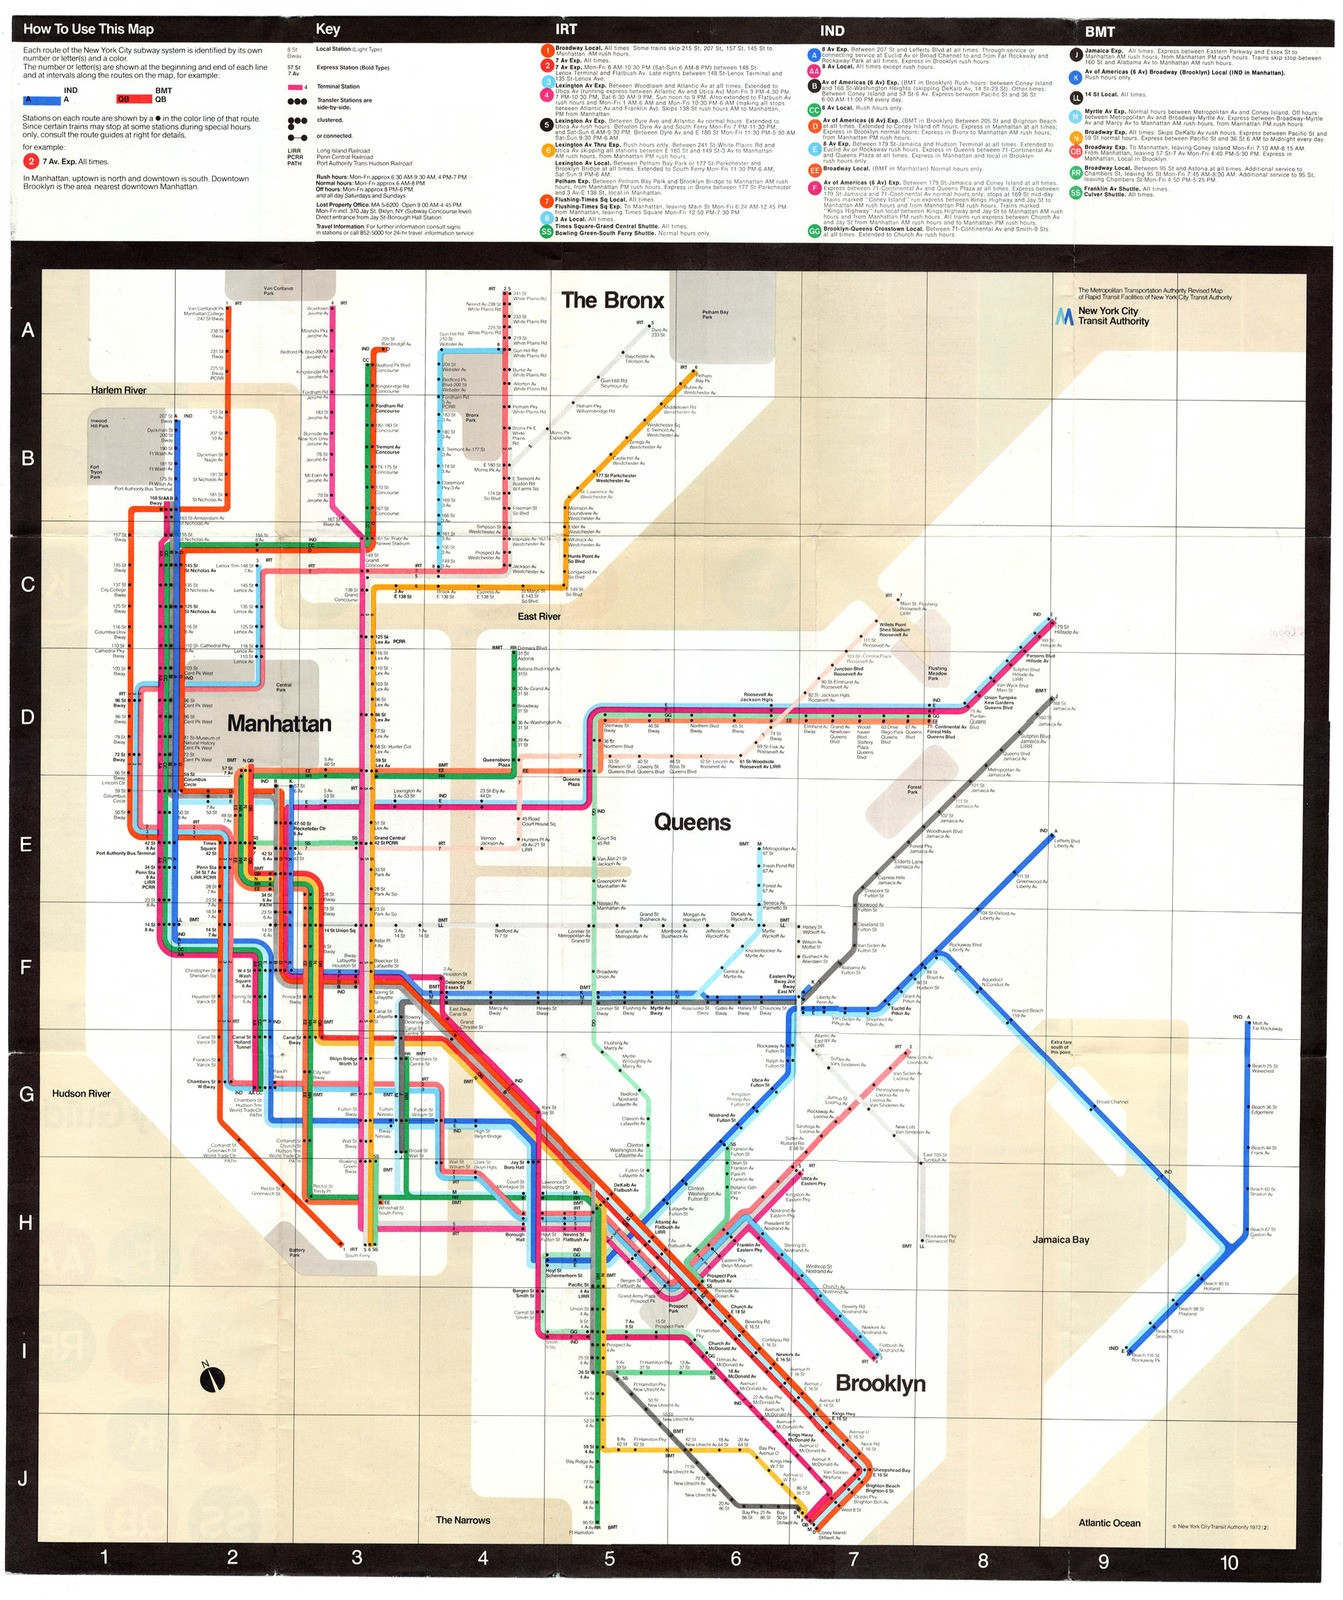 new york city mta map with Massimo Vignelli Nyc Subway on Nyc Bus Map in addition Subway Map Half as well Los Angeles Metrolink Map additionally Read Mta Subway Map likewise Carte Metro.